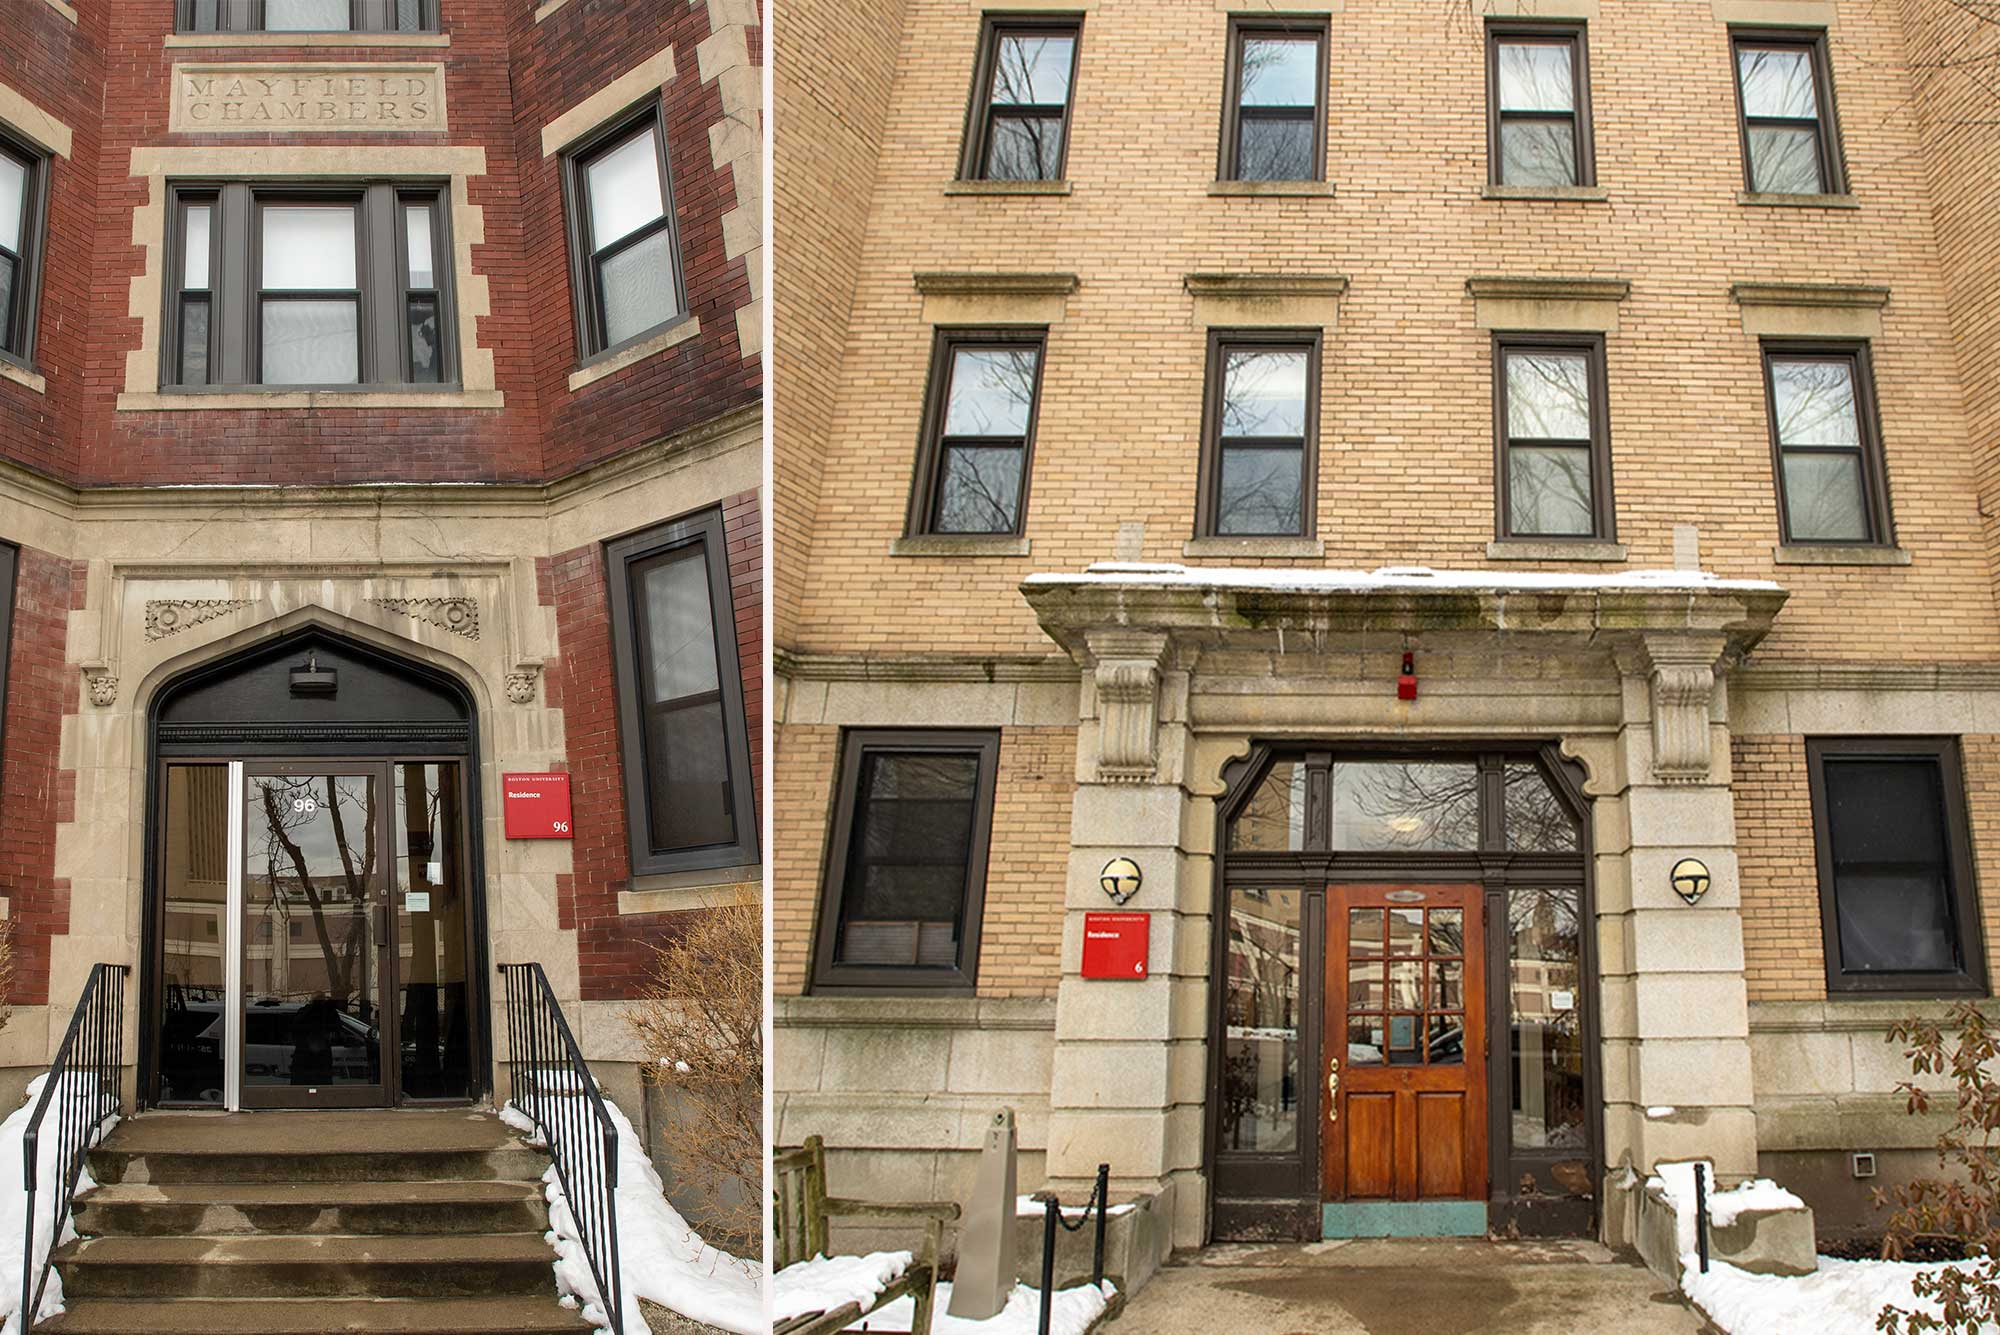 Composite image of two exterior shots of the buildings at 96 Montford and 6 Buswell Streets. 96 Montford, at right, looks like an early 20th century building made of brick with cement trim and steps leading up to the door. 6 Buswell has a tan brick exterior and a wooden front door. There's snow on the ground to the left and right of the sidewalks.